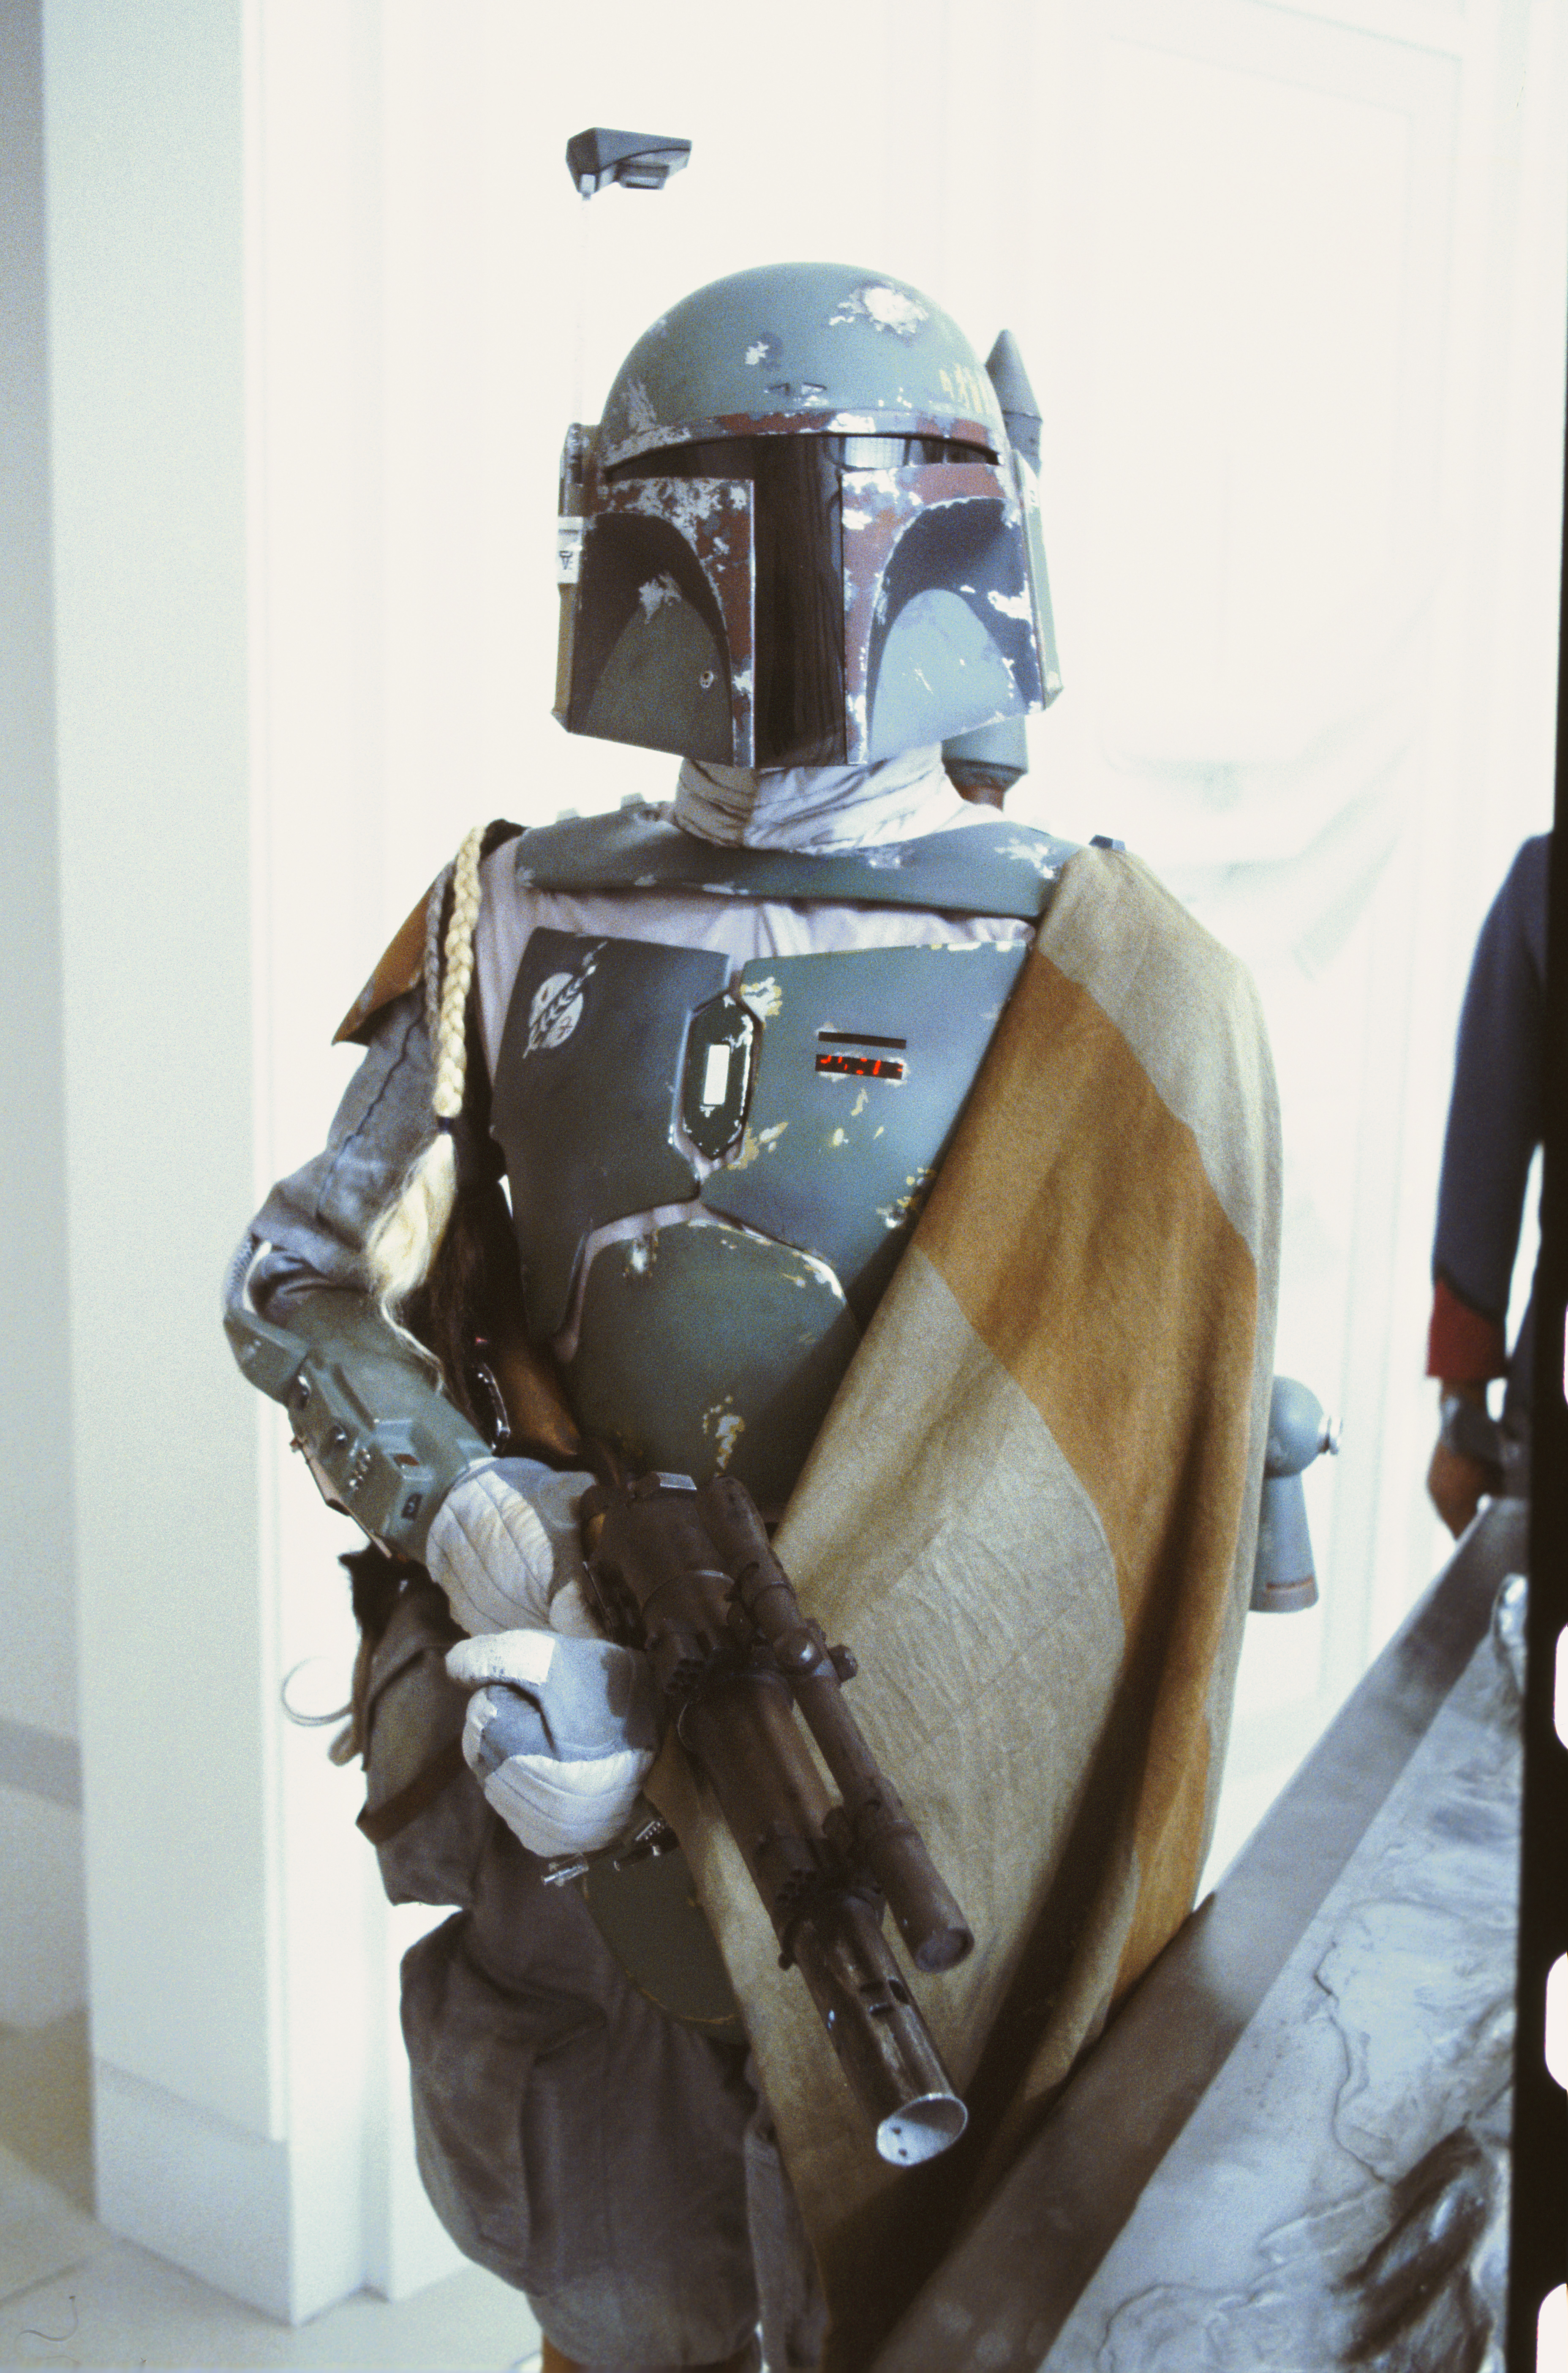 Boba Fett Empire Strikes Back Costume - Bespin Hallway